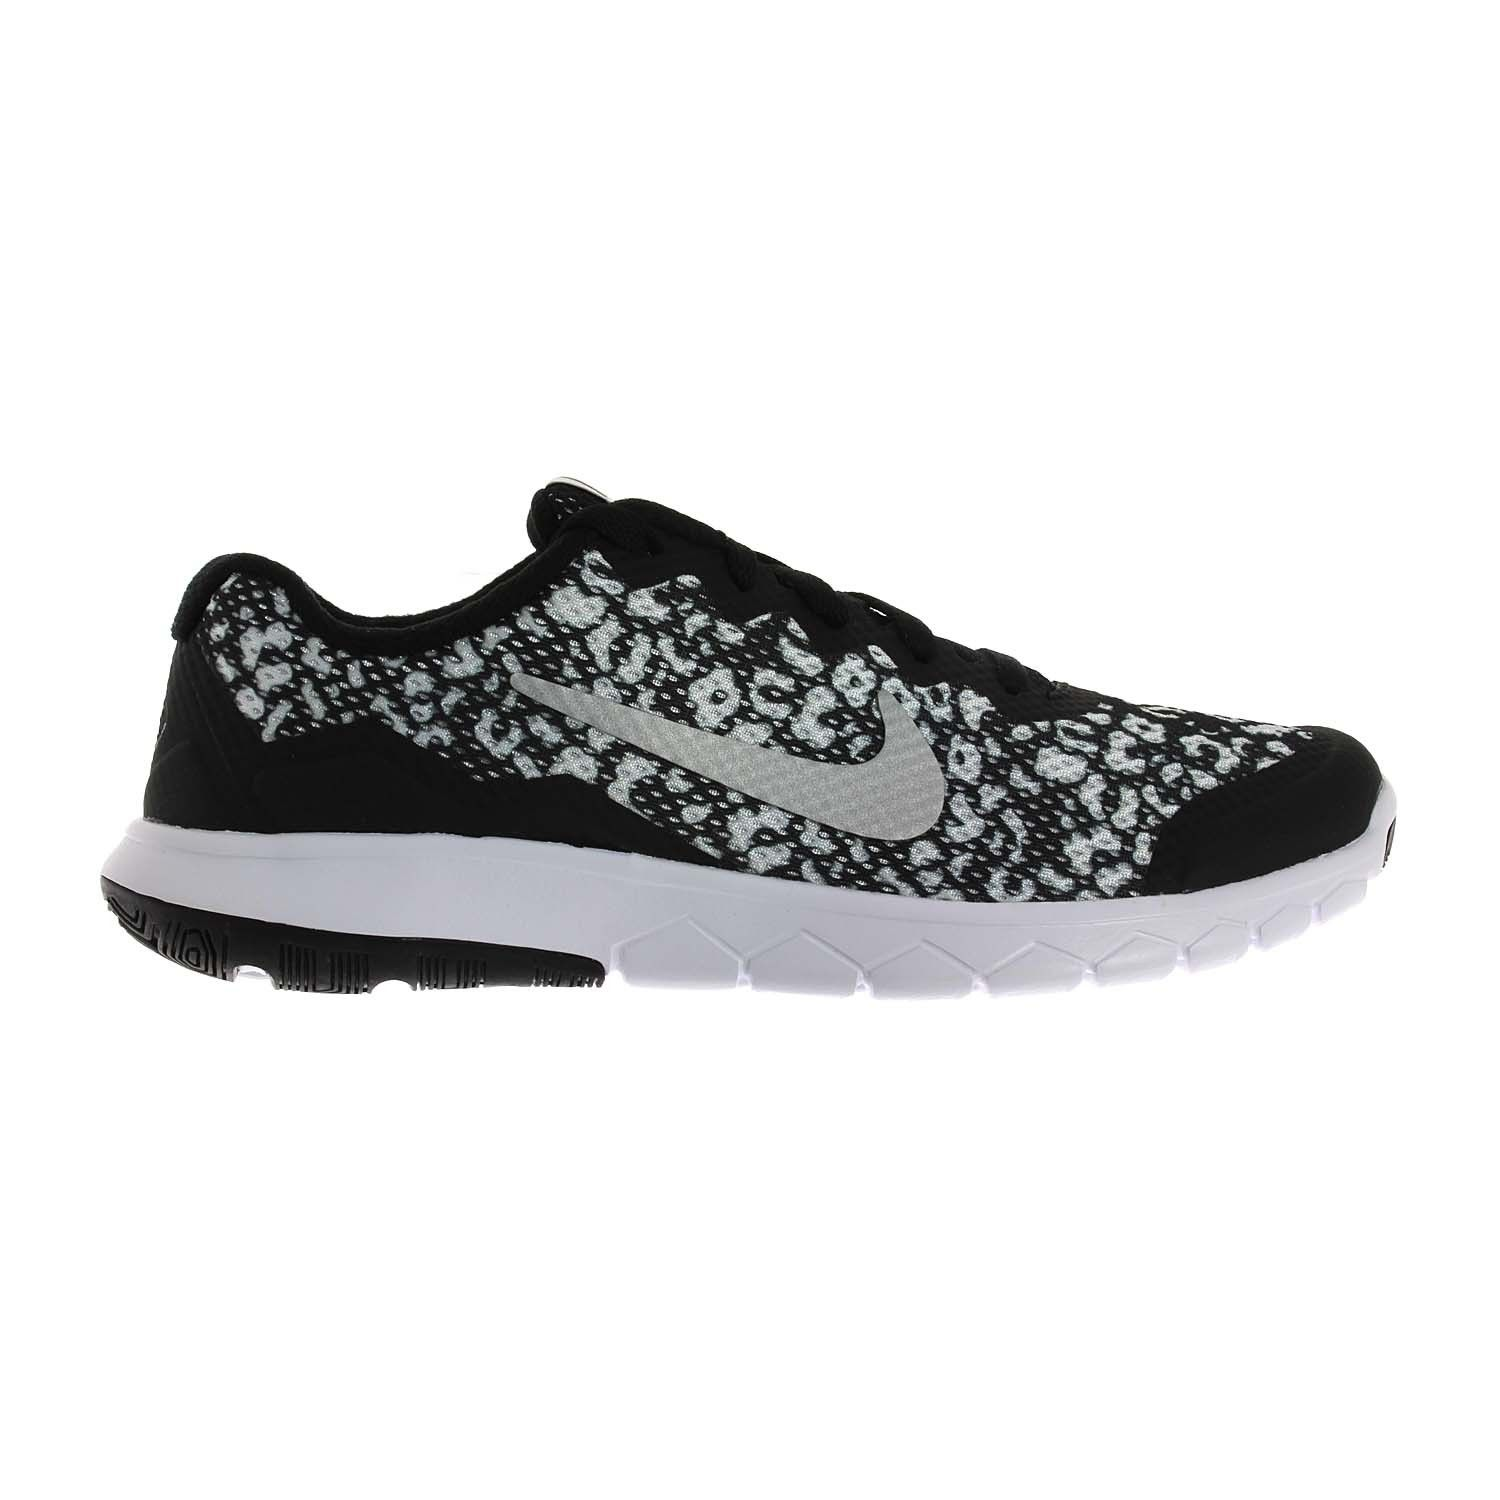 Hit your stride with the Flex Experience RN 4 Running Shoe from Nike. Mesh  upper in an athletic running style Lace-up front, padded tongue and co